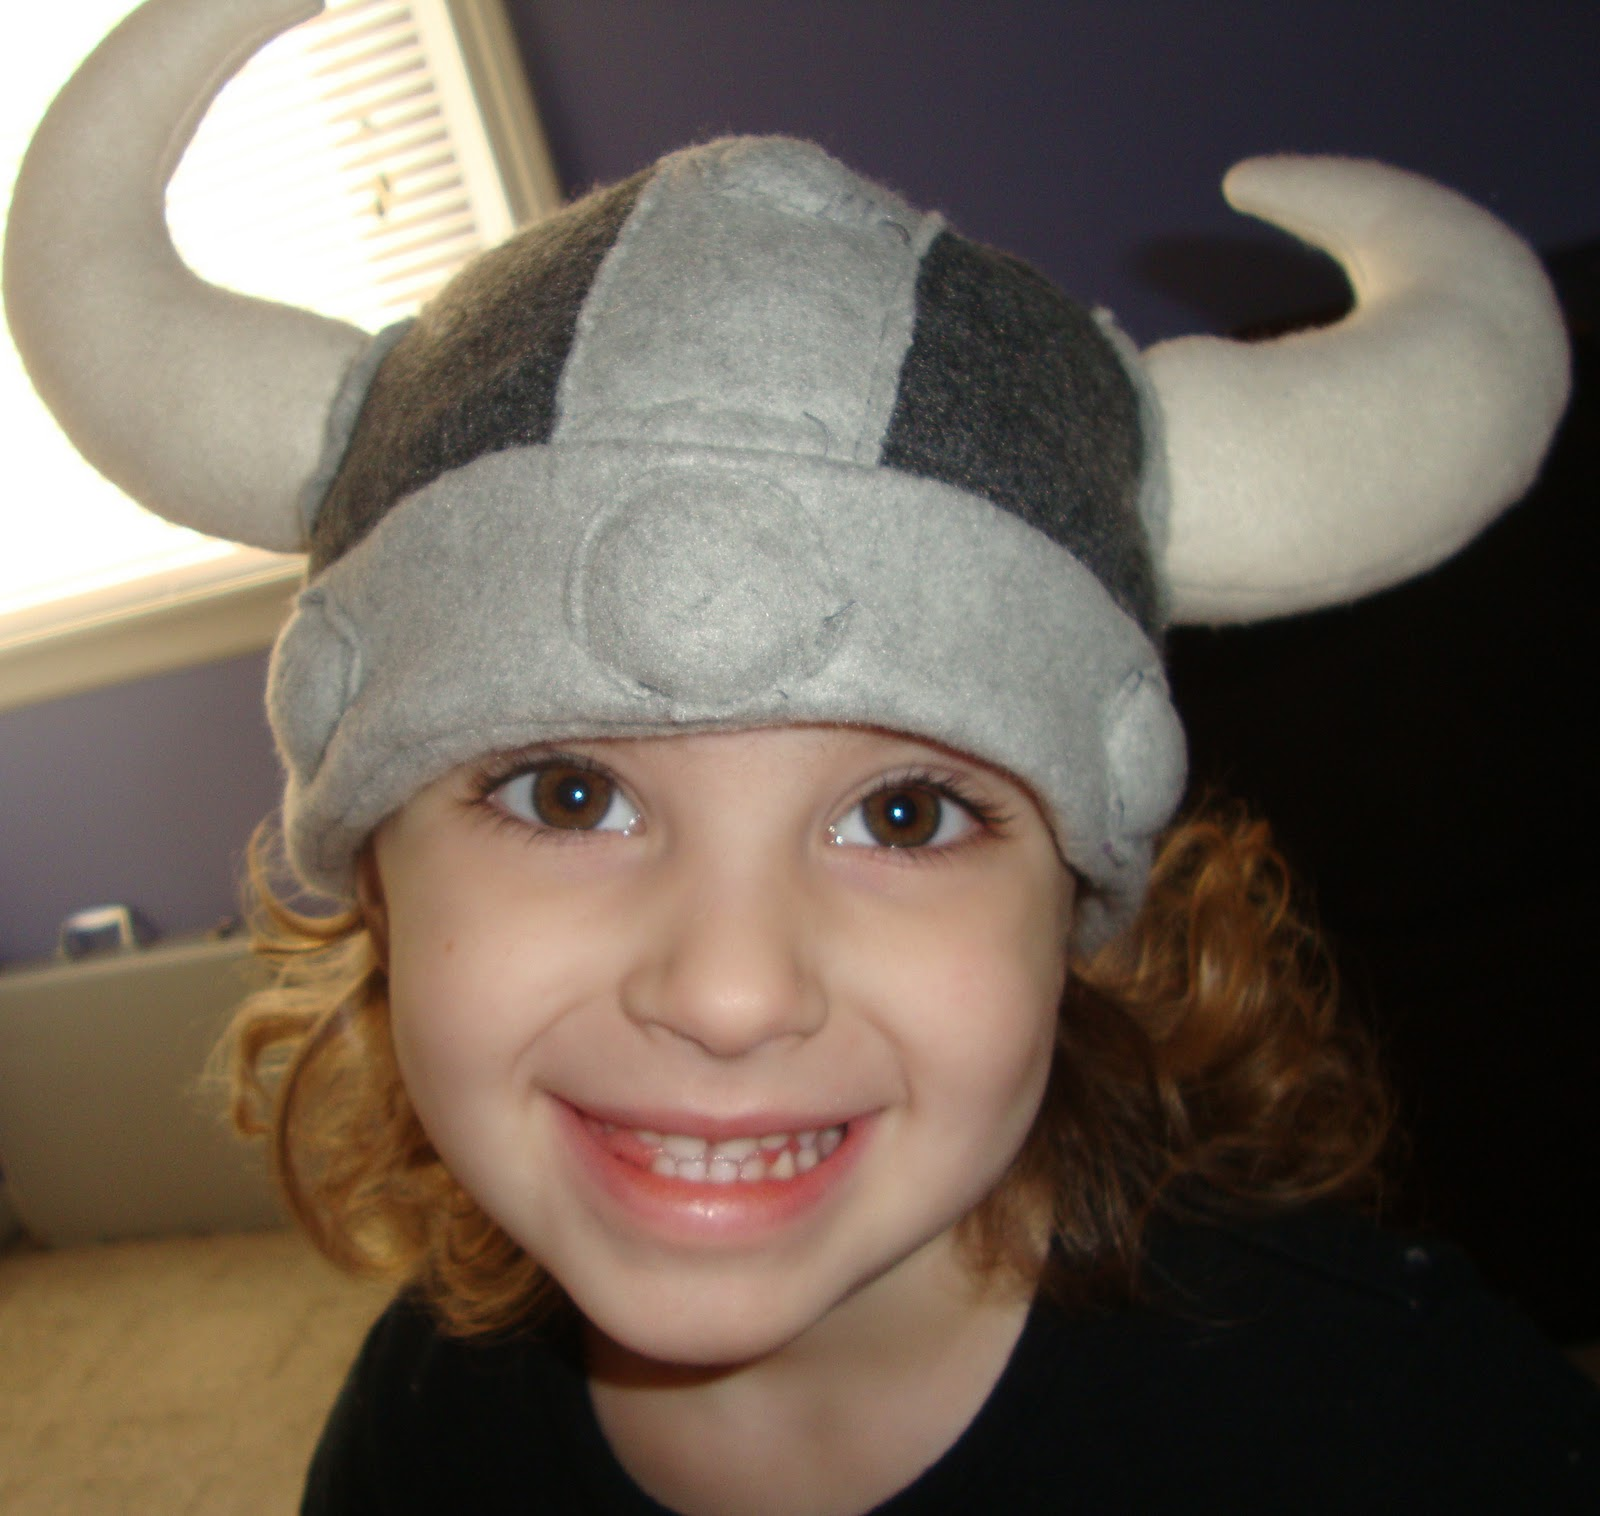 Bethany Sew-and-Sew: How to Make a Fleece Viking Hat